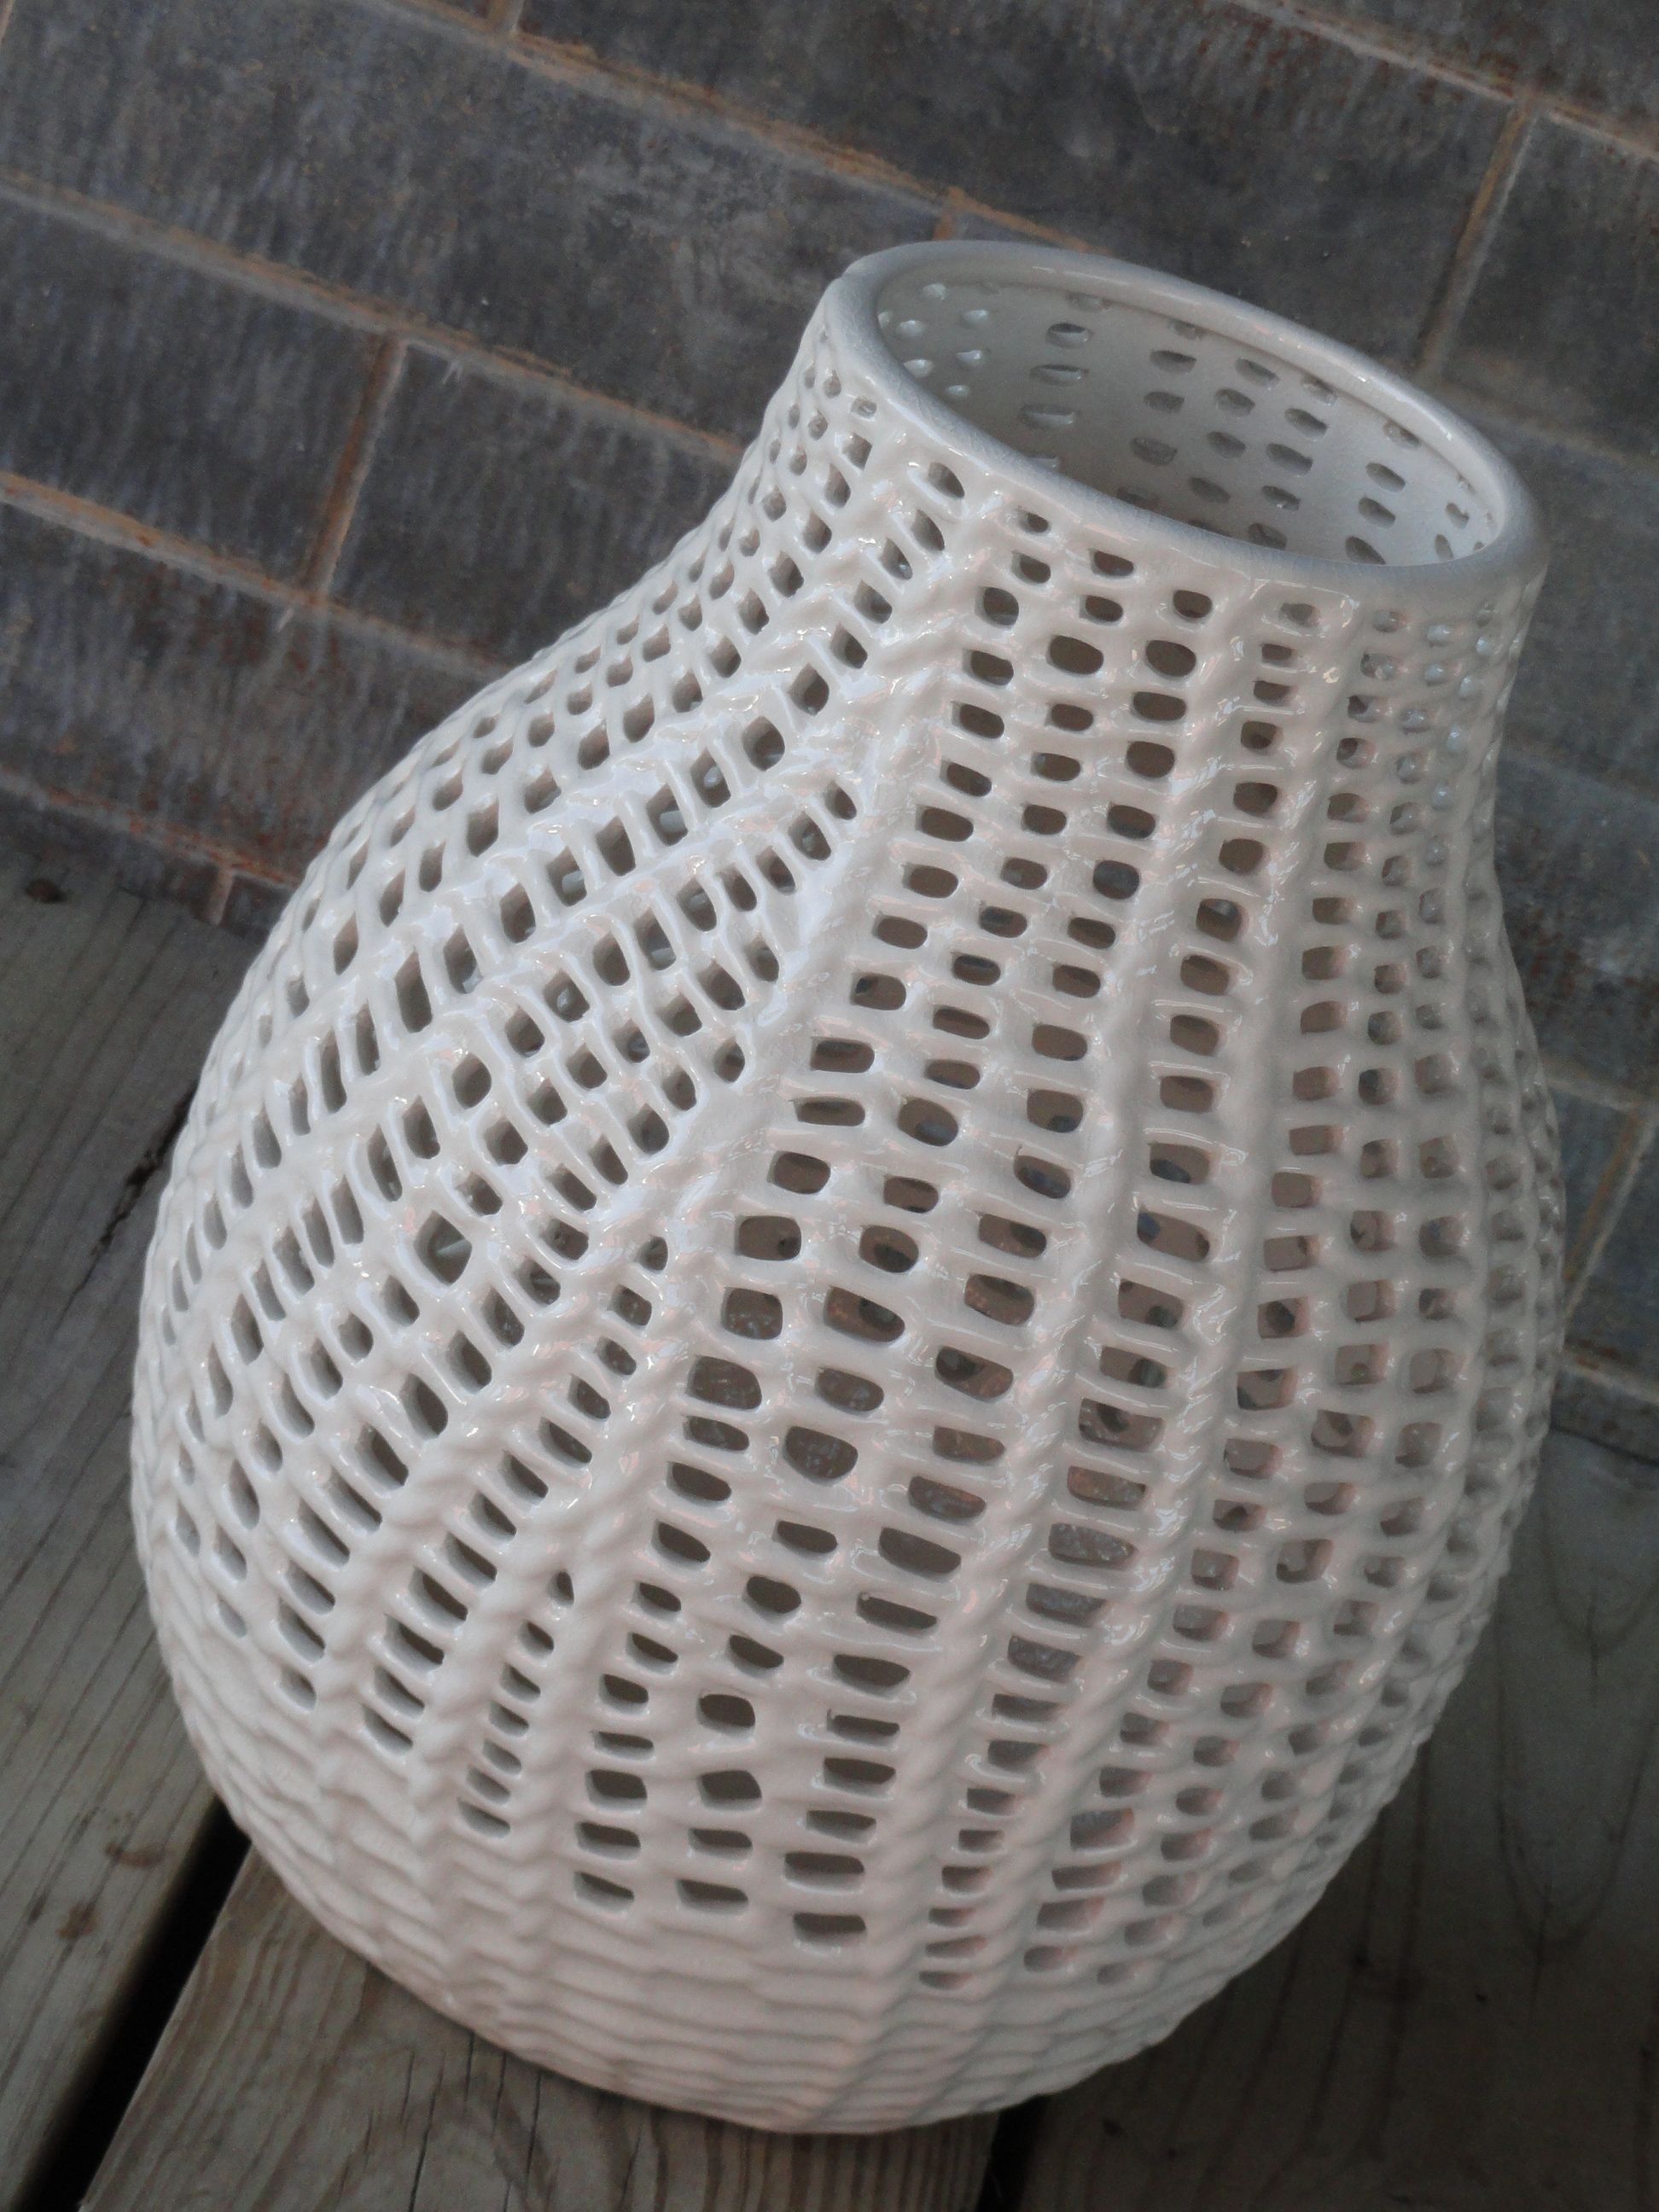 Woven Ceramic Vase Texture Is Beautiful W H I T E S